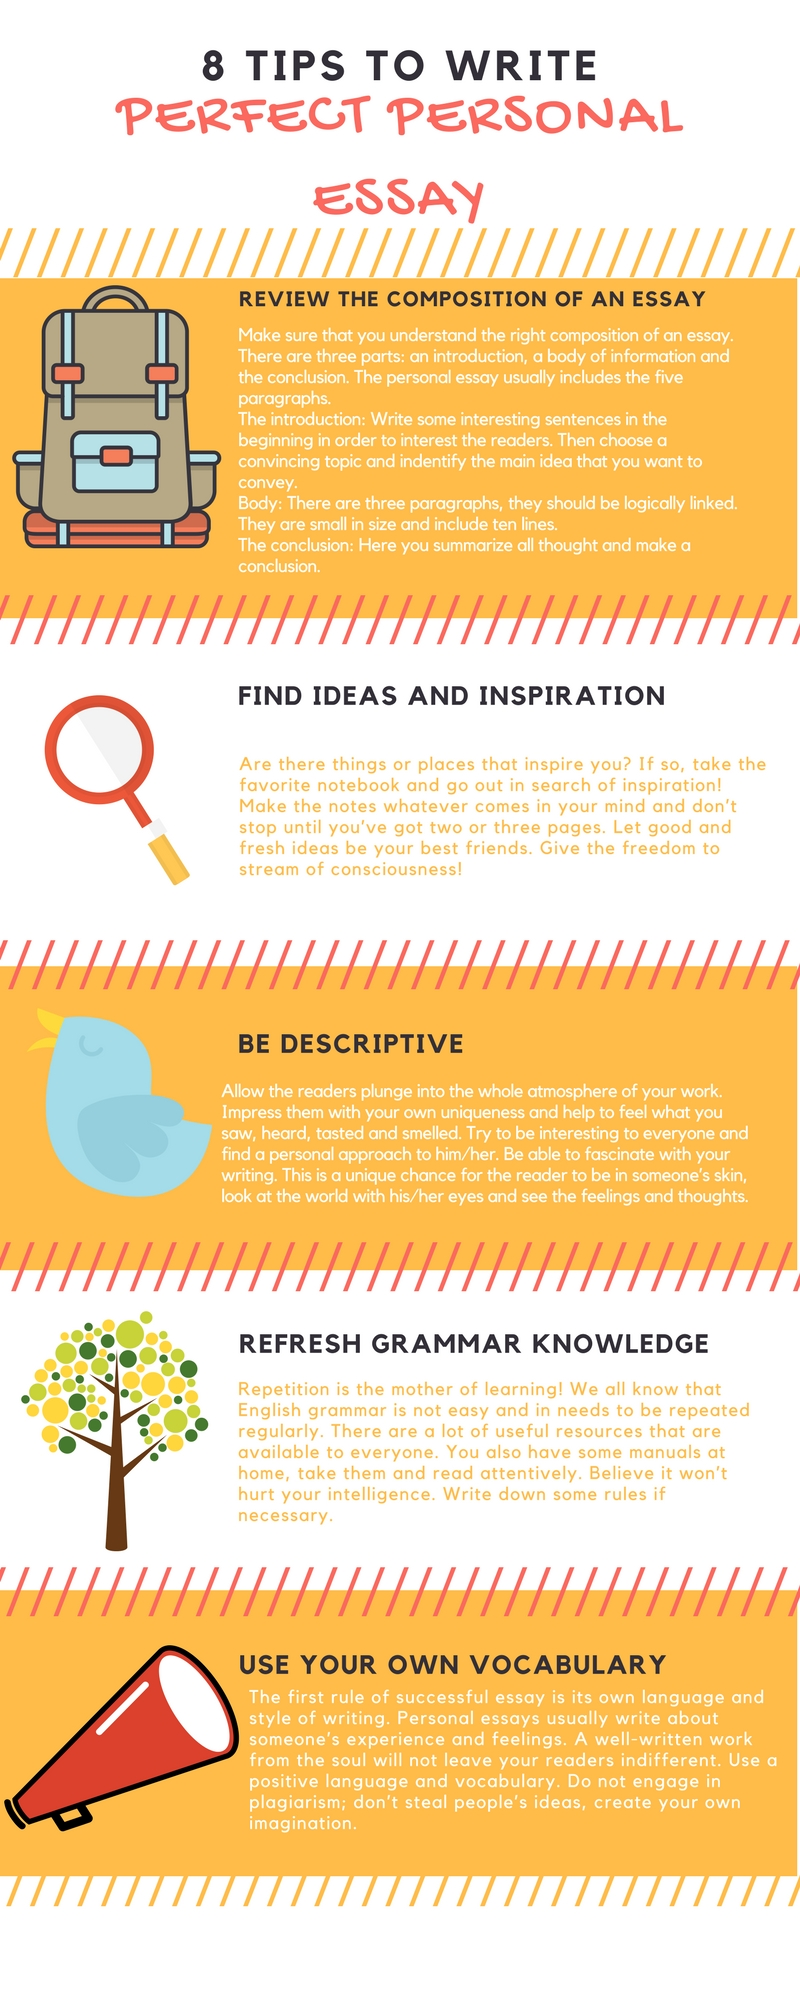 Research Essay Thesis Below There Are Useful Information That Will Help You To Write The Personal  Essay Quickly And Accurately Follow All These Tips Essay For High School Students also Essays On English Language  Tips Which Help Students To Write Perfect Personal Essay The Yellow Wallpaper Essay